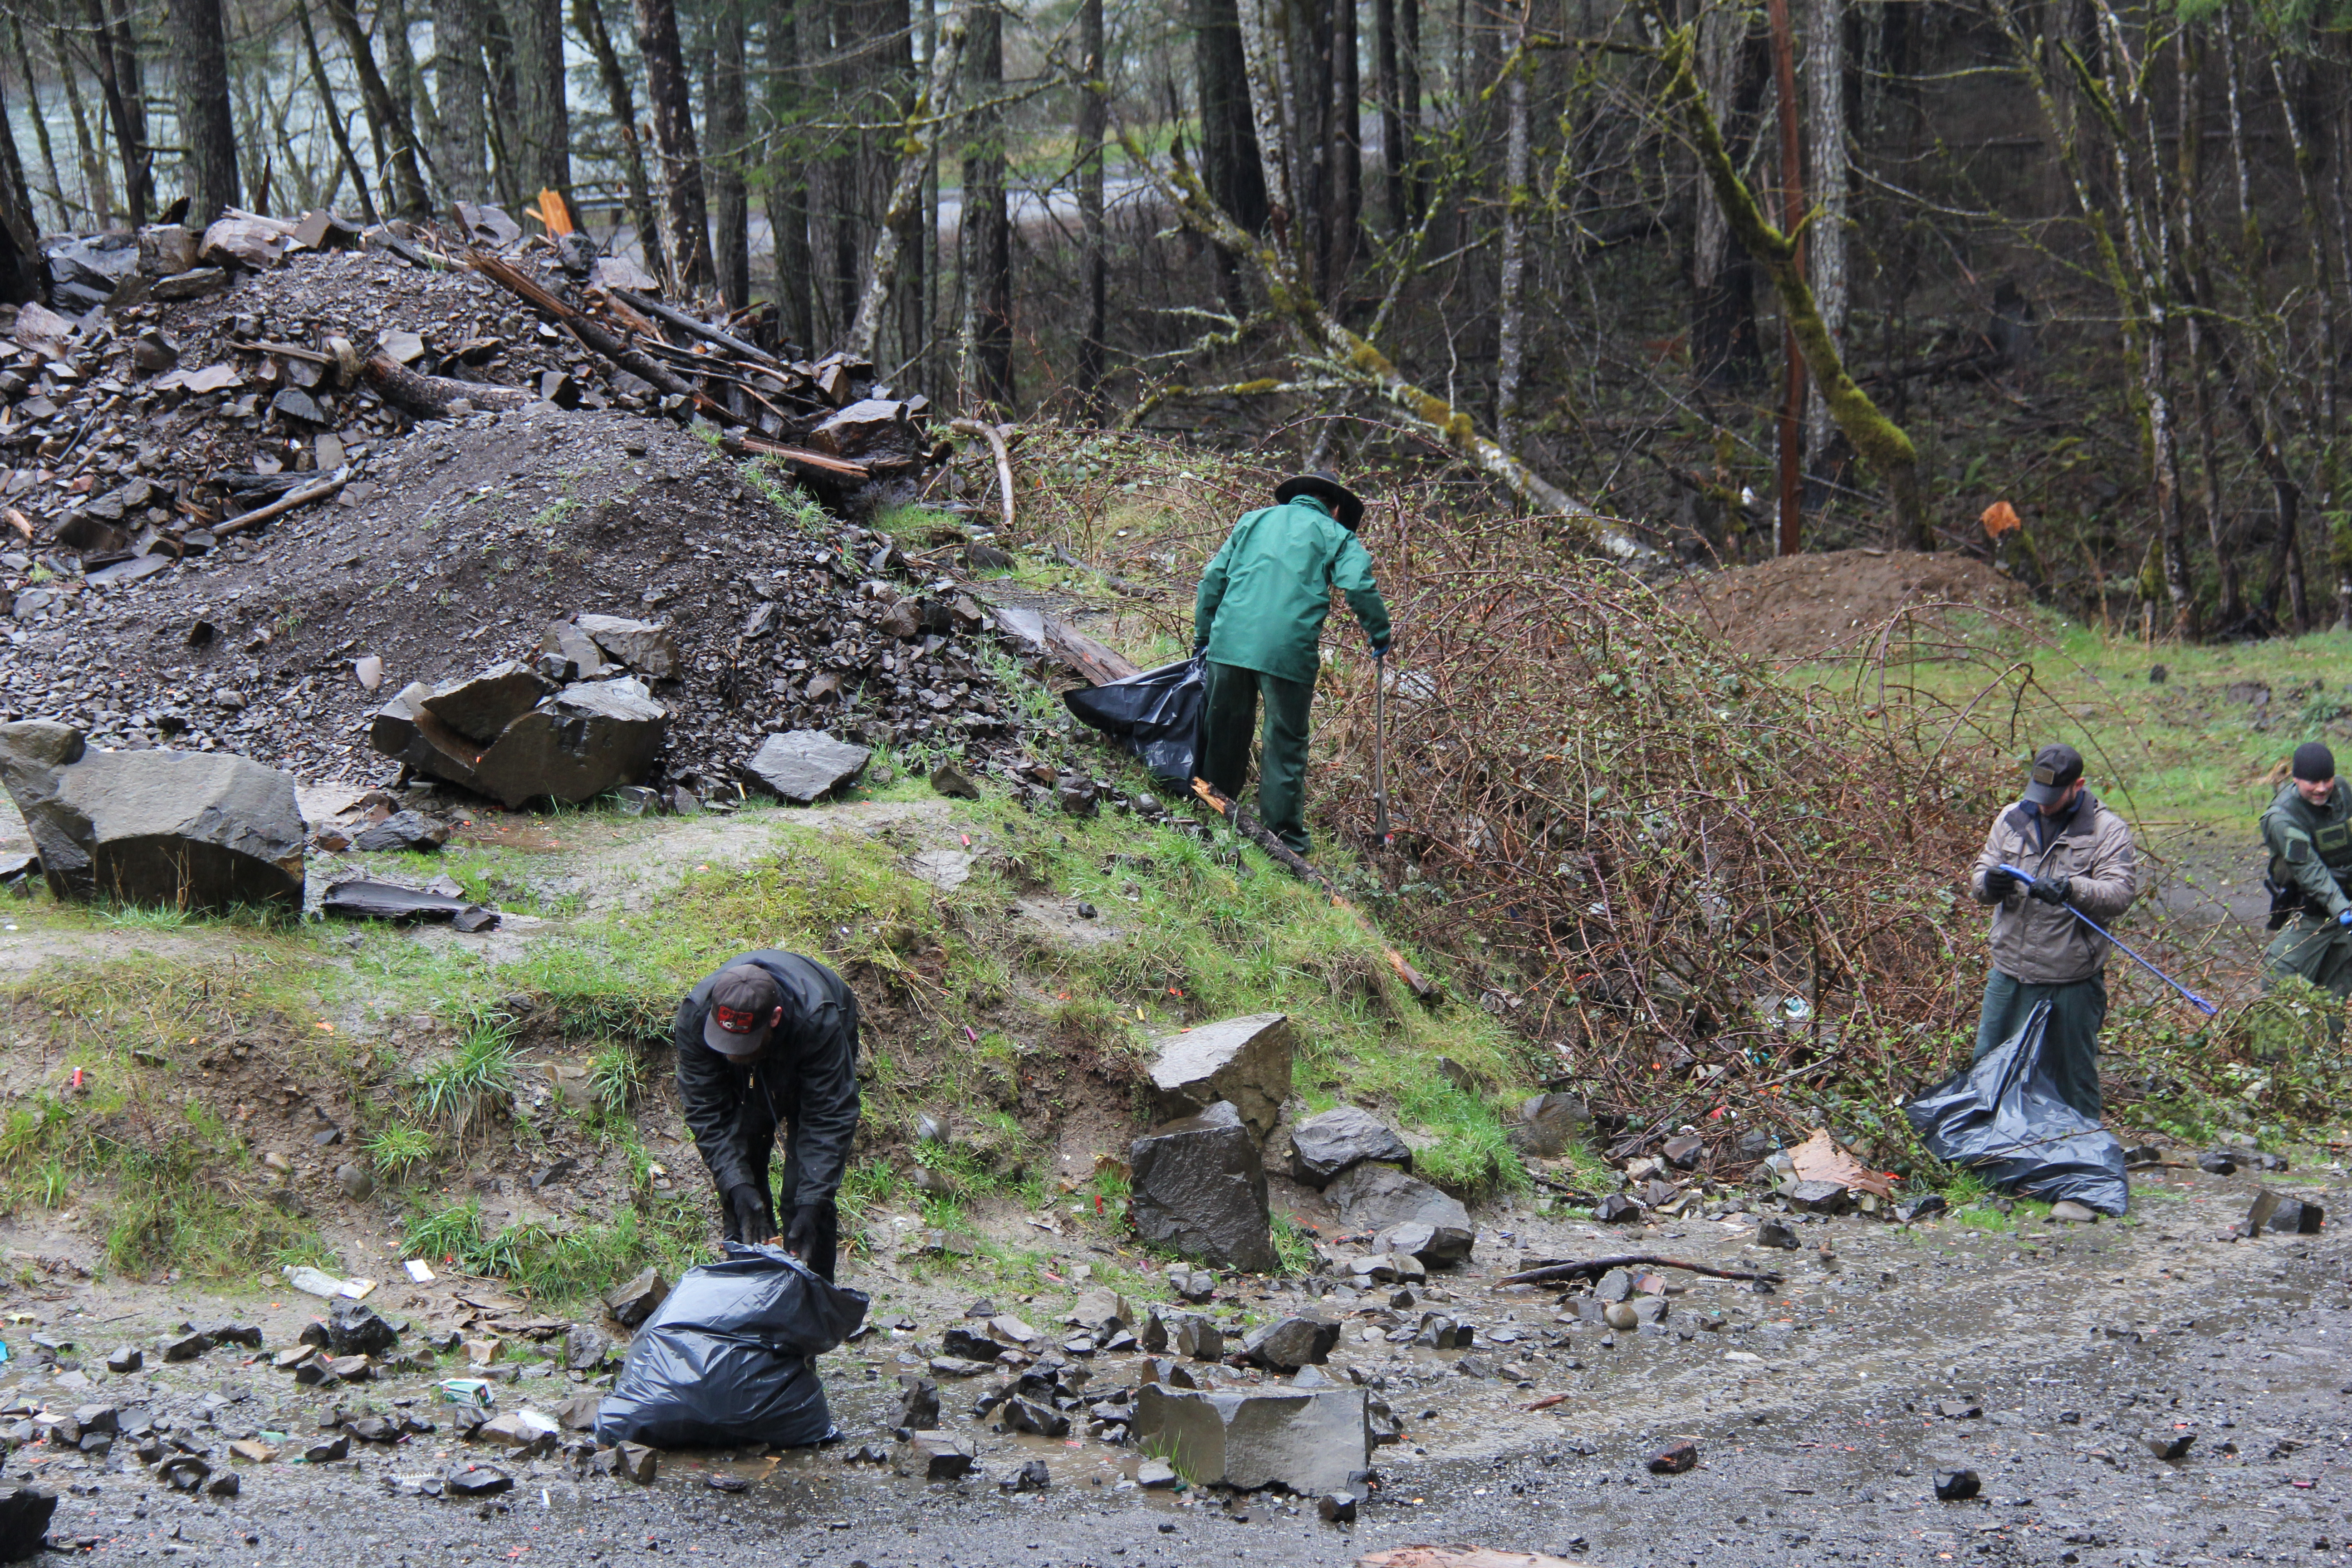 Trash No Land volunteers joined Mt. Hood National Forest employees and the Clackamas County Dumpstoppers for a Clean-up Event